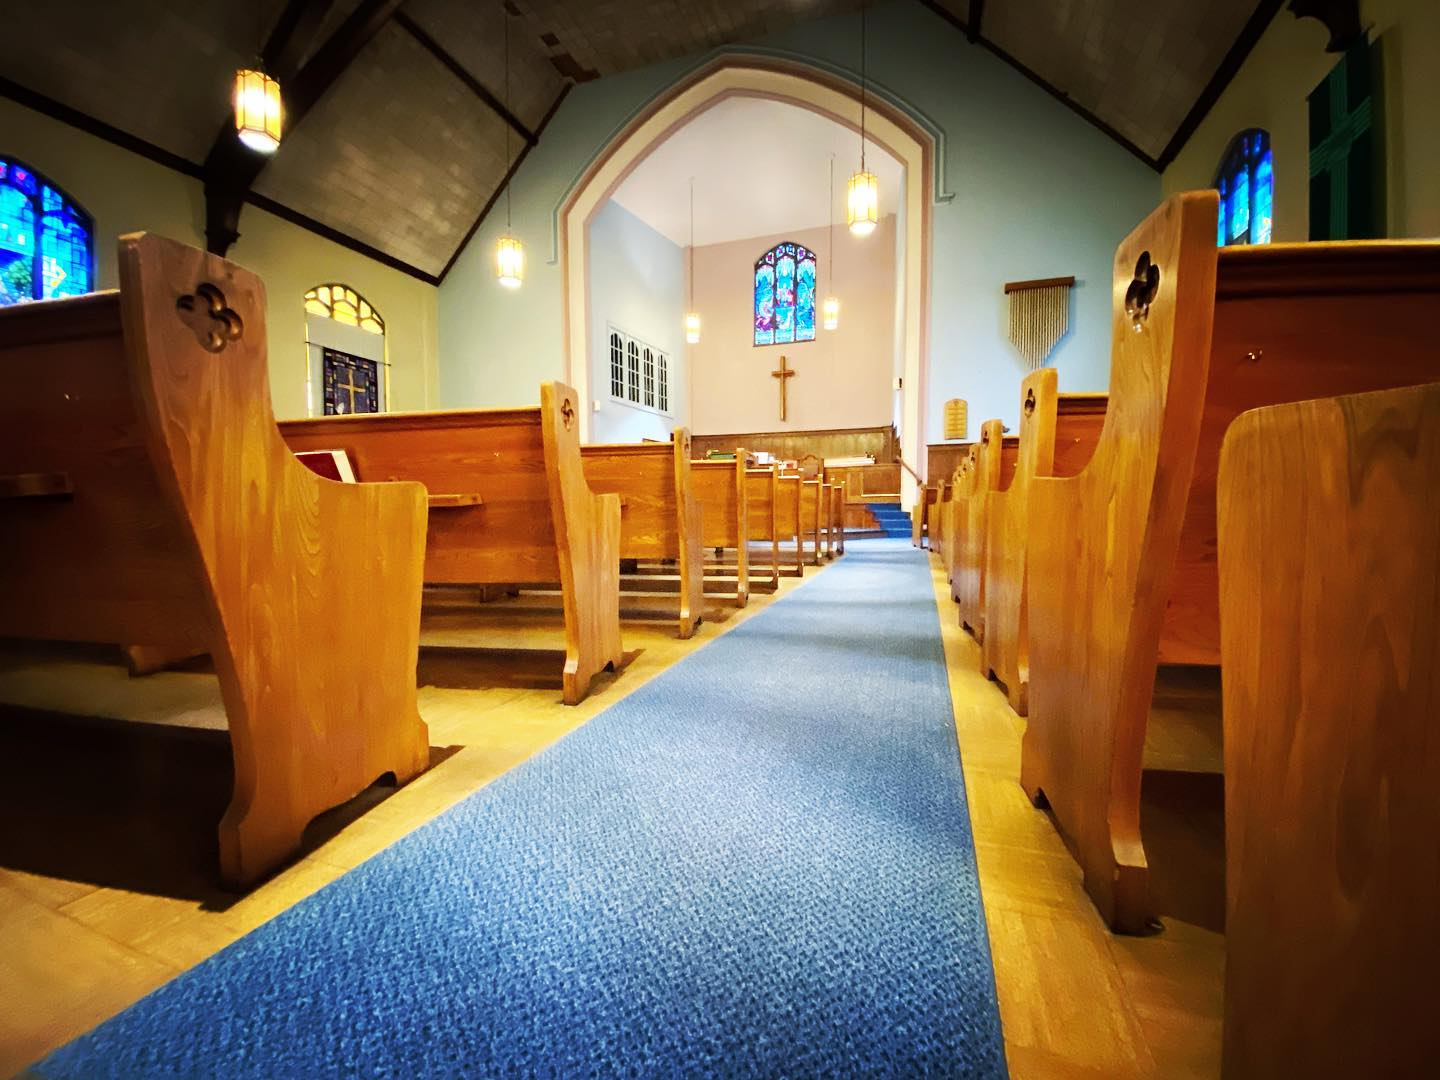 A blue carpeted aisle with wood pews on either side, leading to the altar.